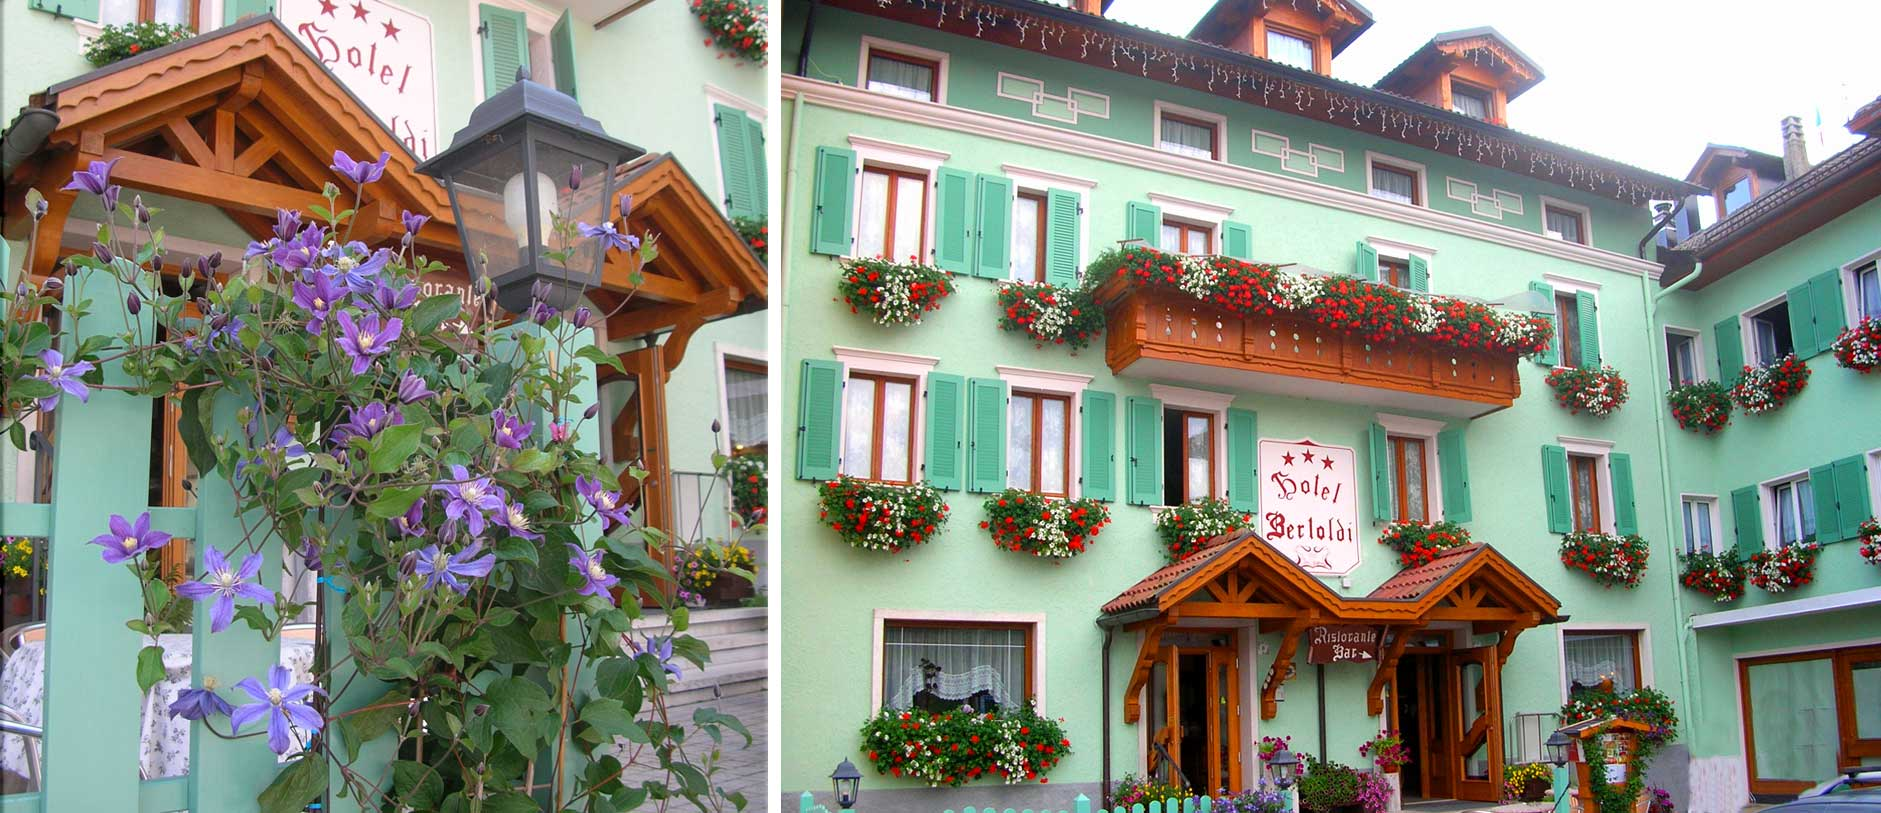 Holidays with the comfort to feel at home here at the Hotel Bertoldi in Lavarone  with the warm family management, the services and information you need for your holiday on the Alpe Cimbra!